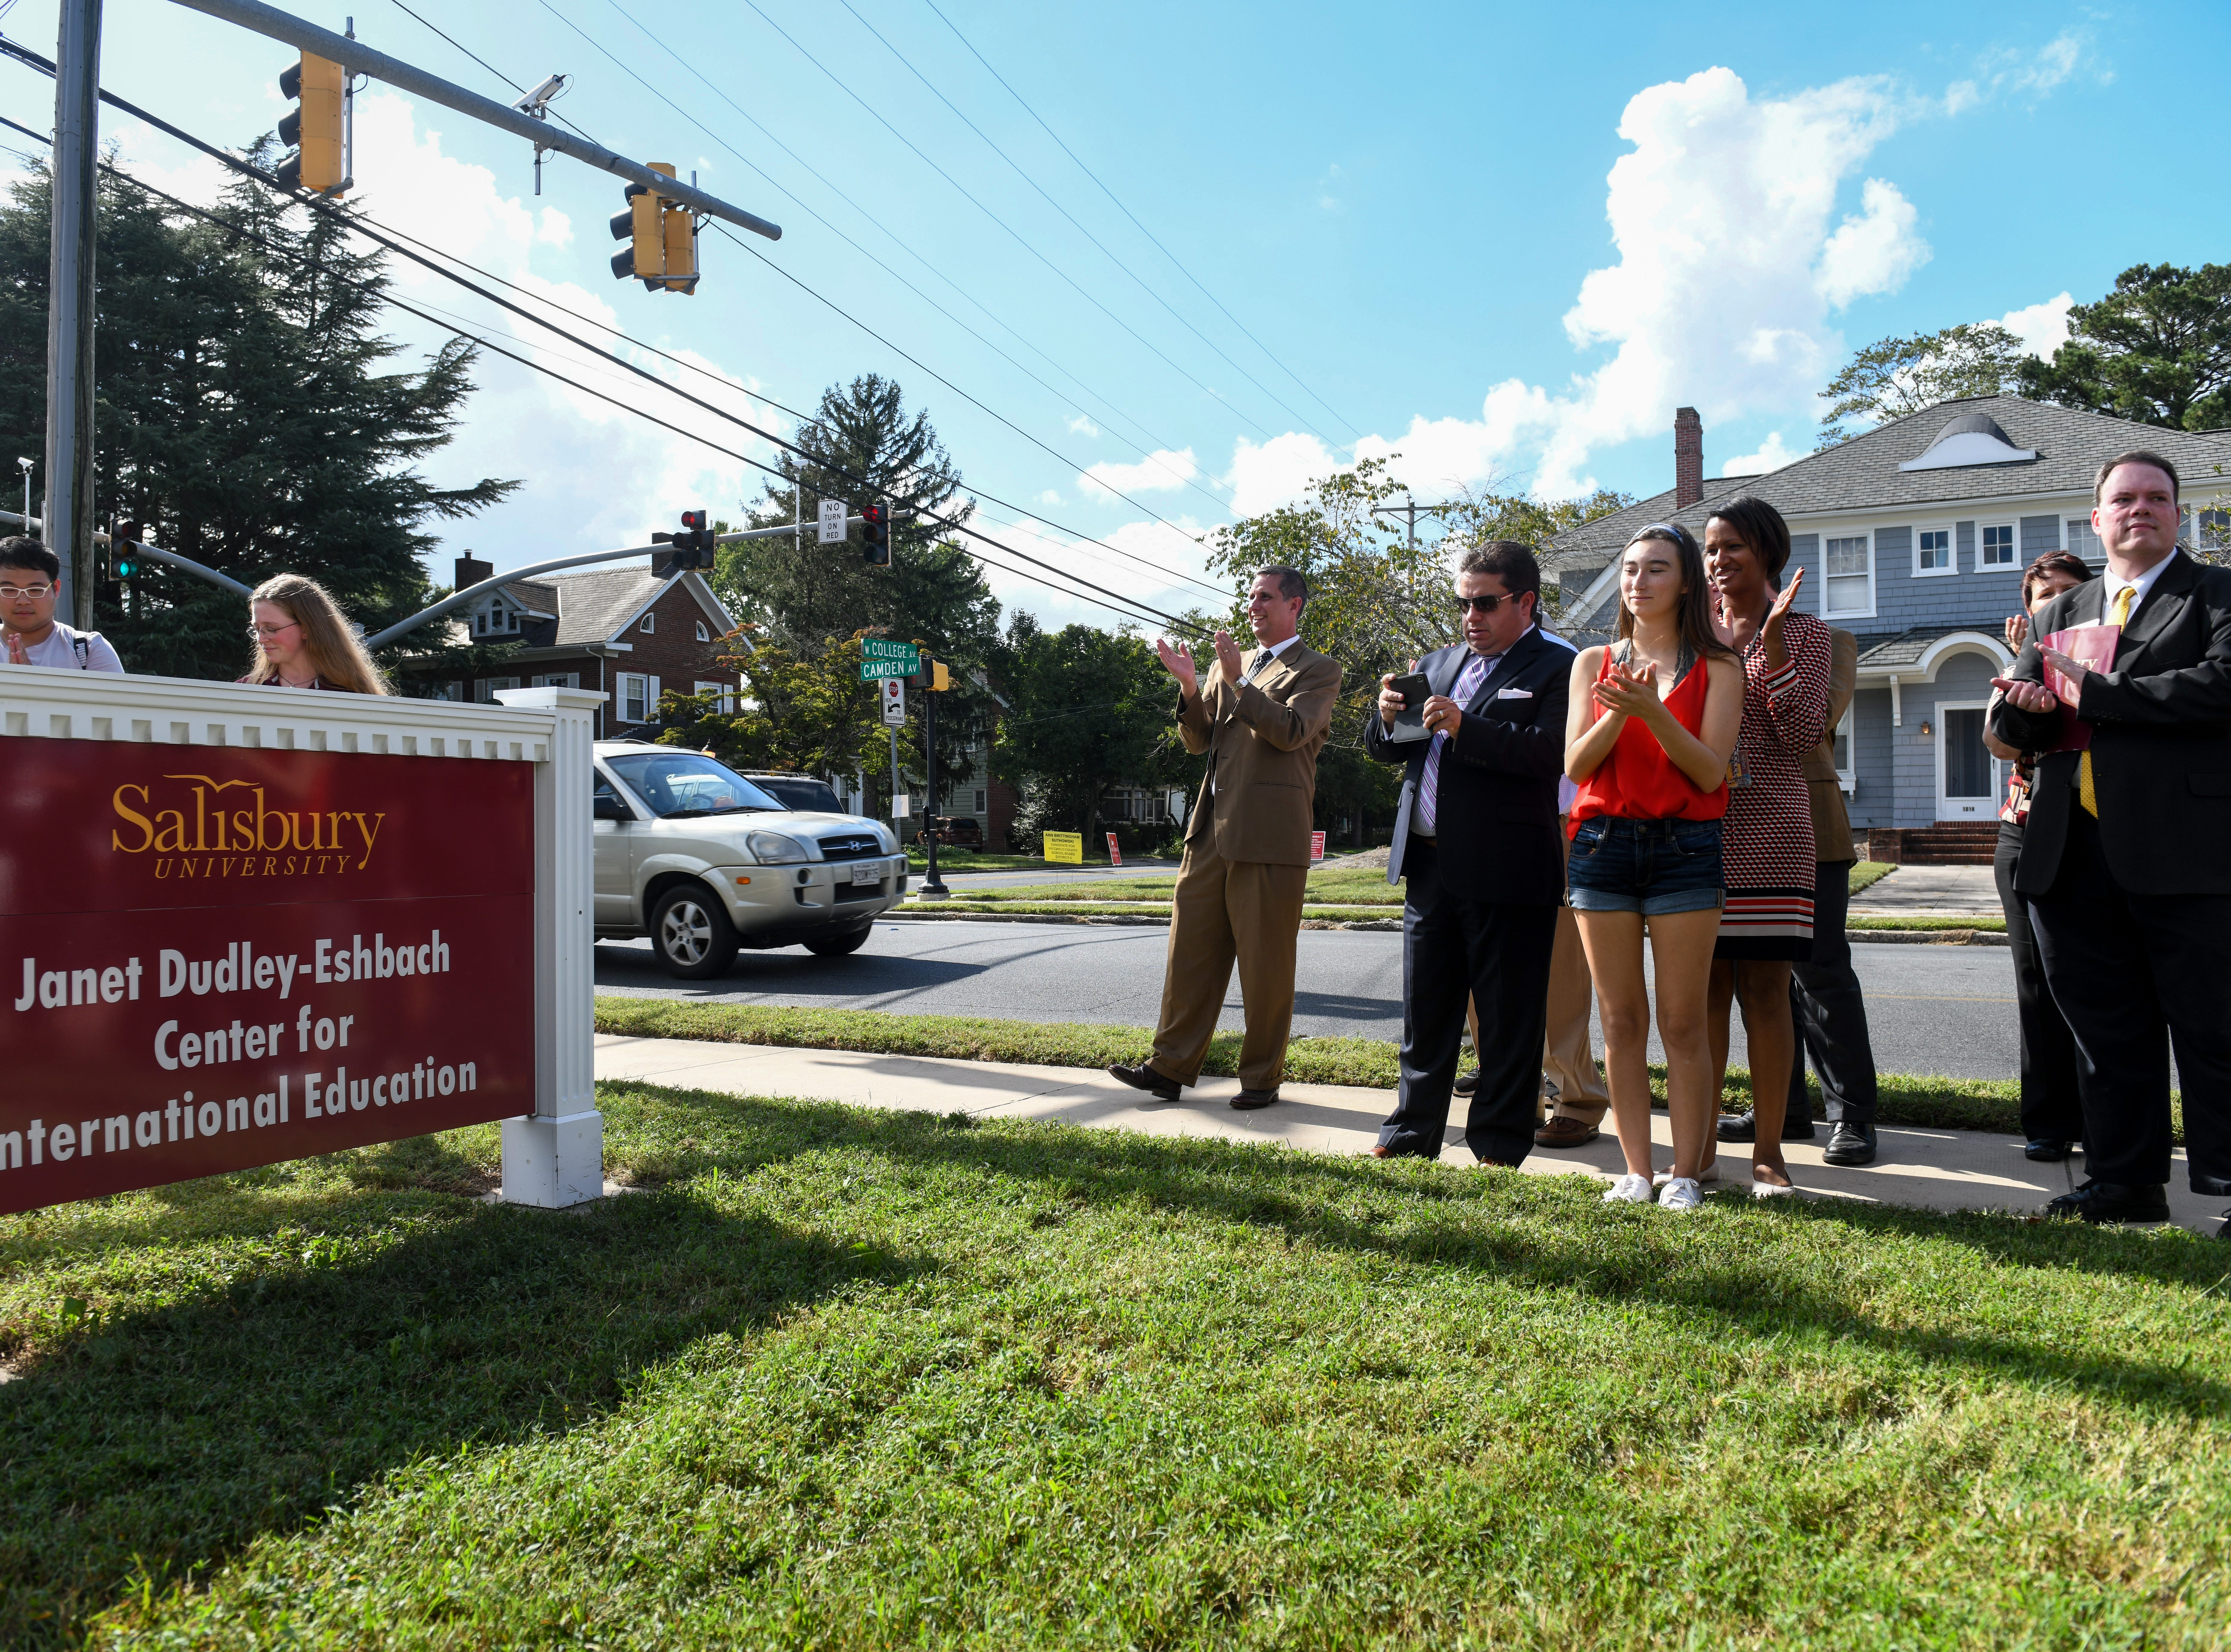 Salisbury University students Shannon Chambers and Zhengwu Yang unveil the new sign at the Center for International Education in honor of former President Janet Dudley-Eshbach on Wednesday, Oct 10, 2018.